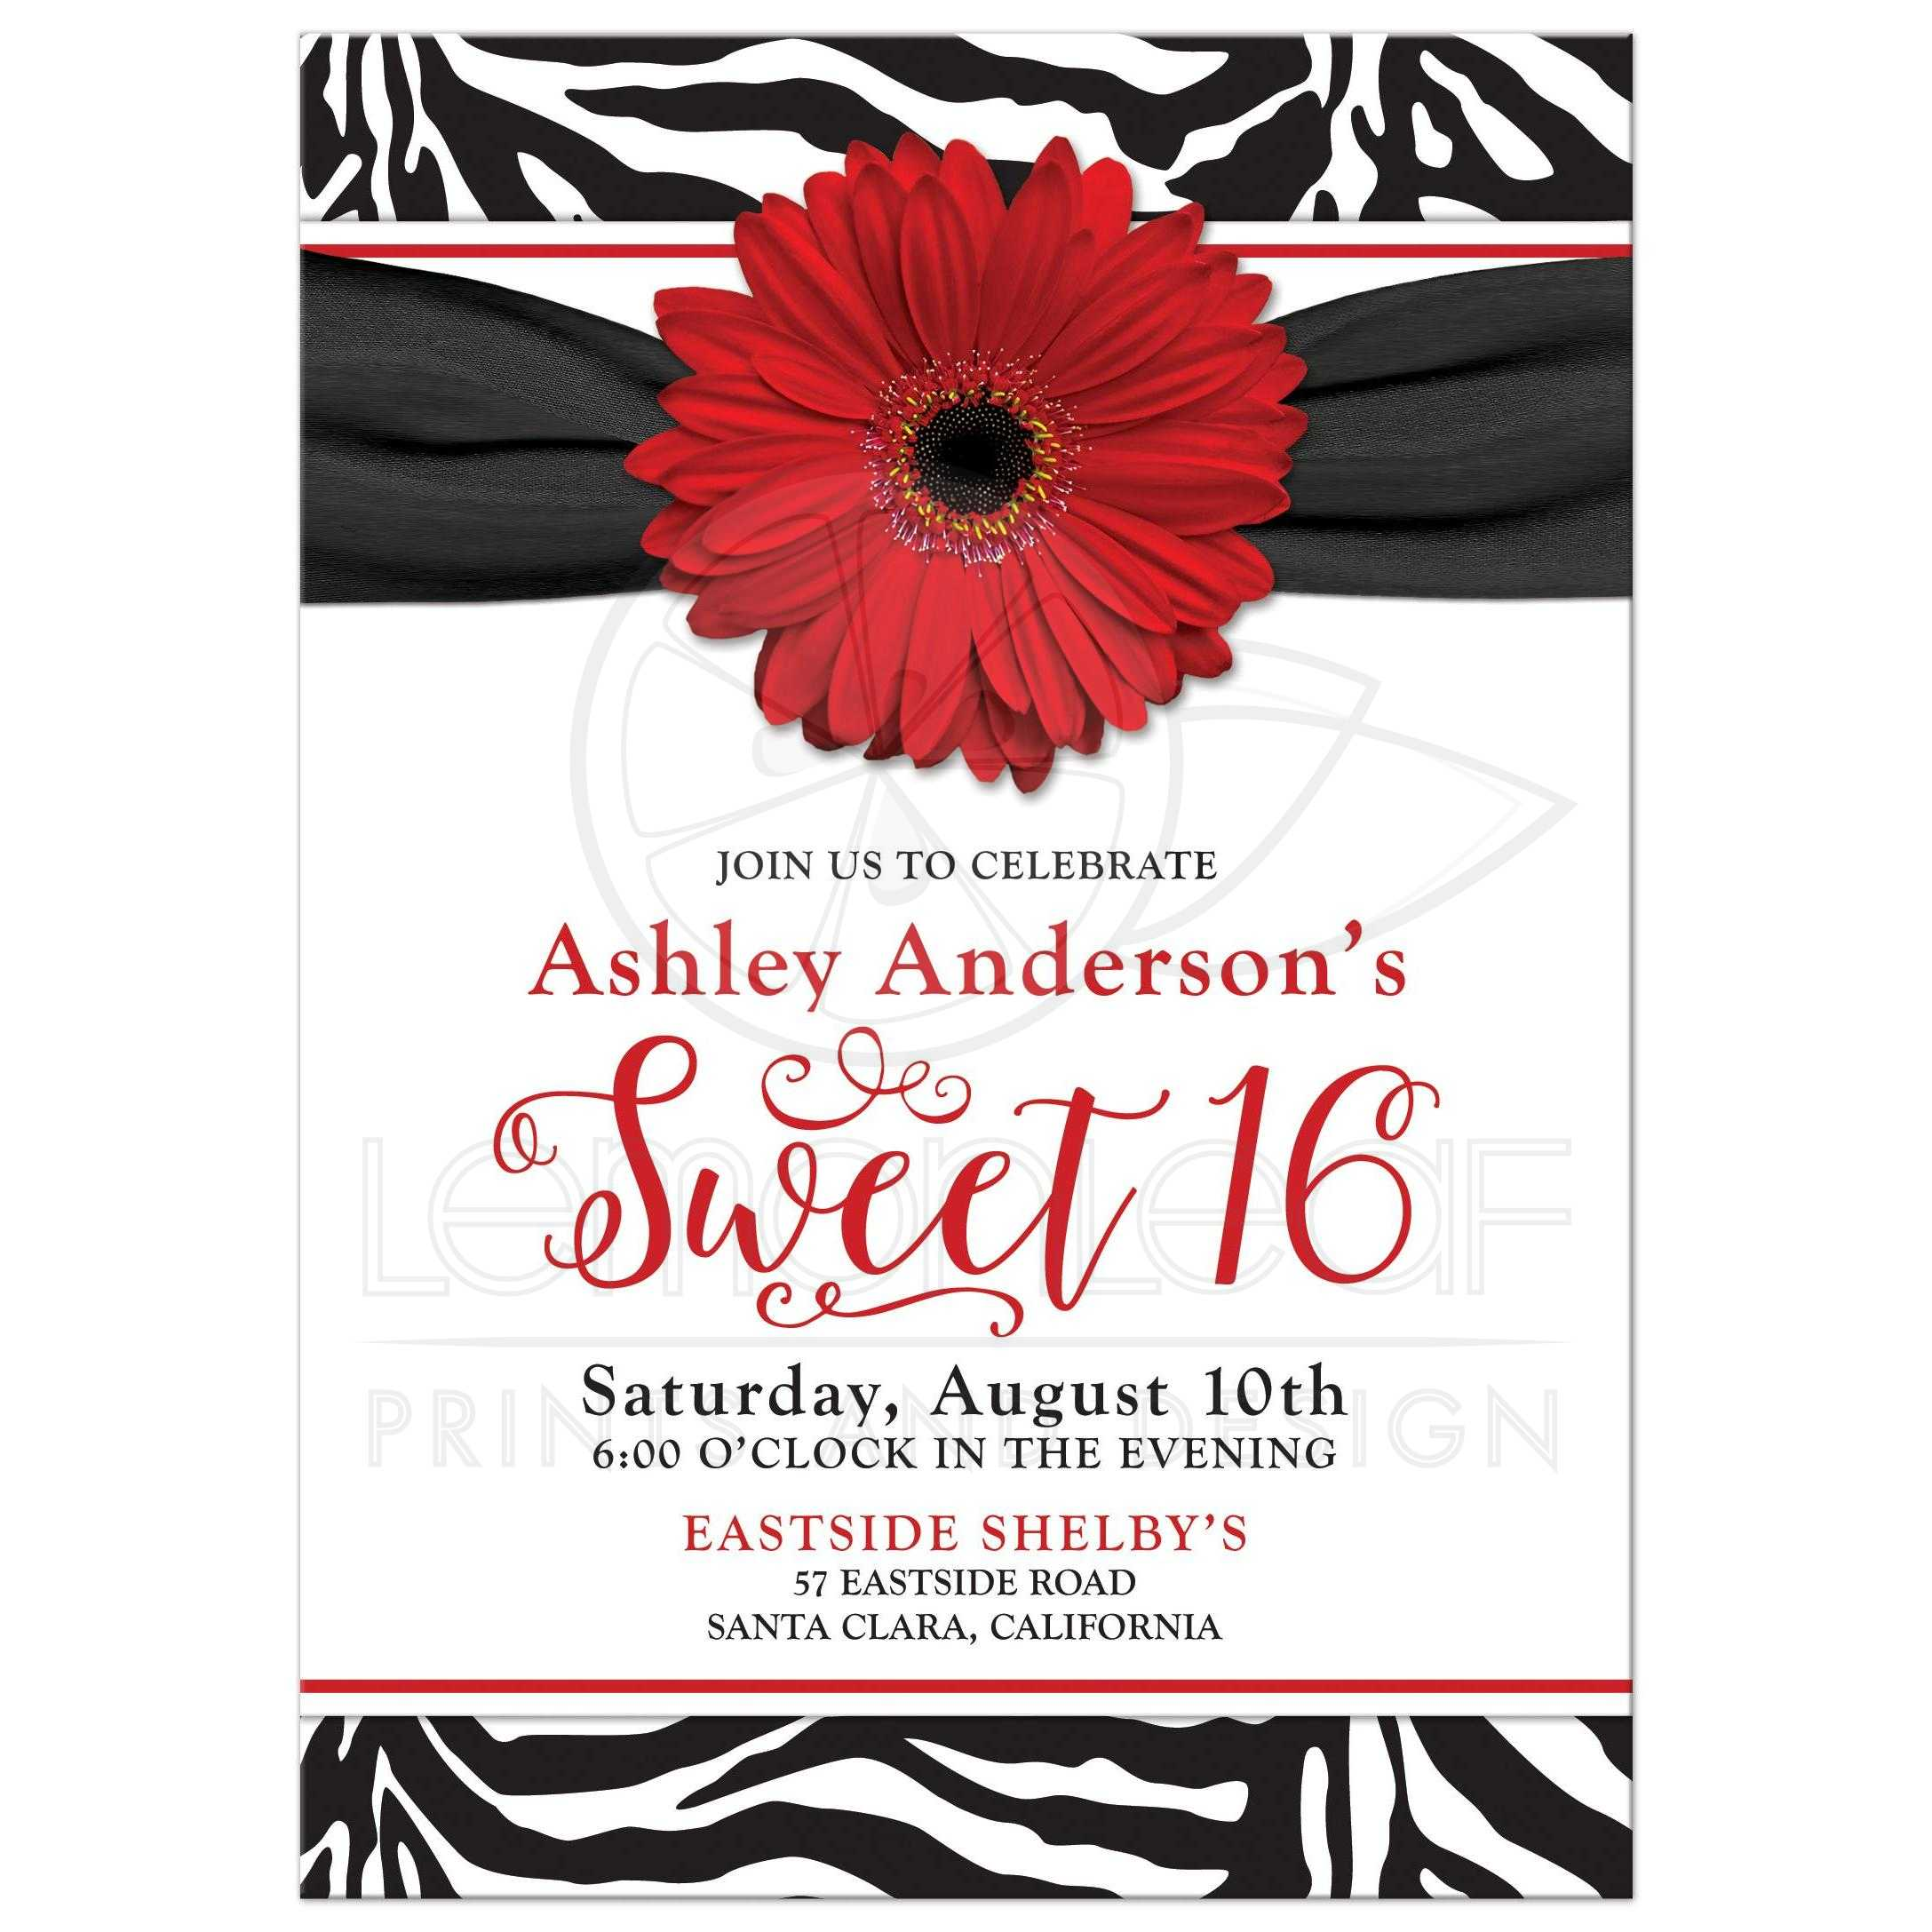 Sweet 16 birthday invitation chic black white zebra print red daisy red daisy black and white zebra print sweet 16 birthday party invitation front filmwisefo